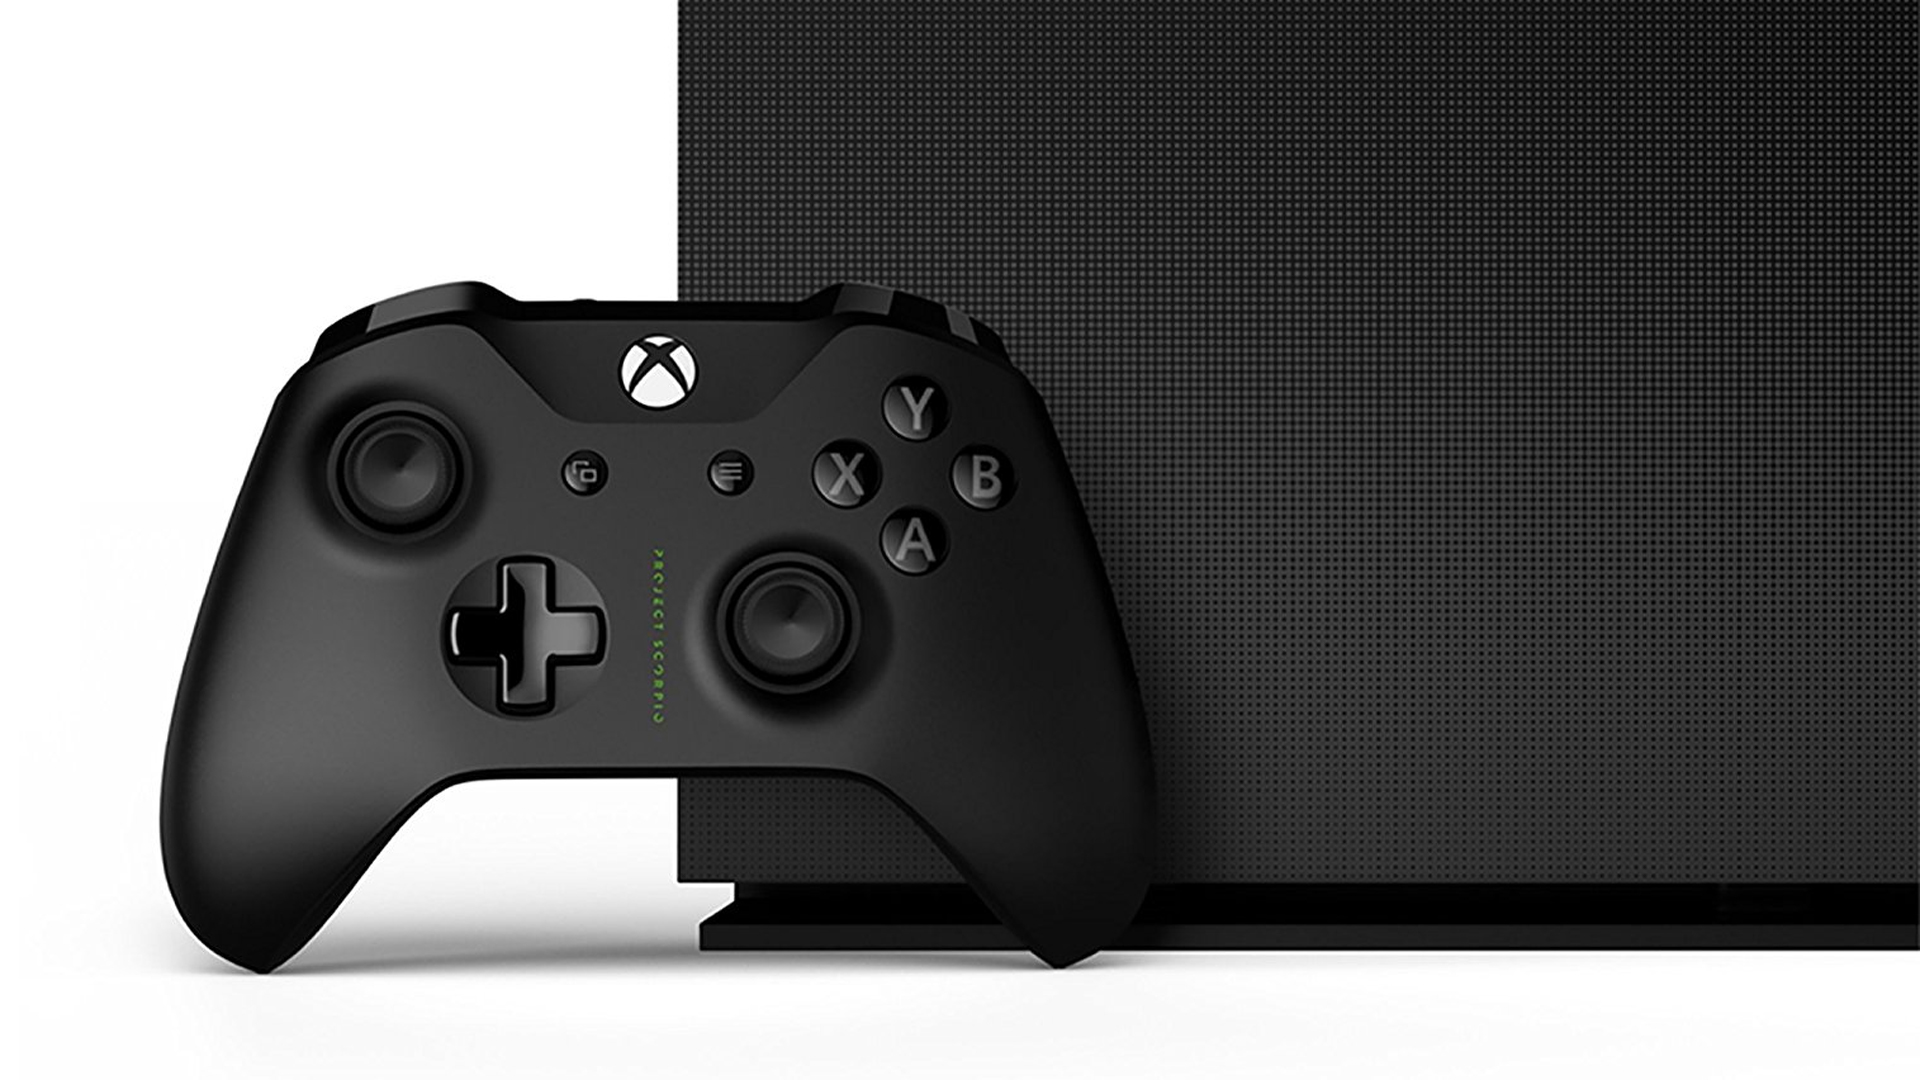 Project Scorpio Edition Xbox One X pre-order now